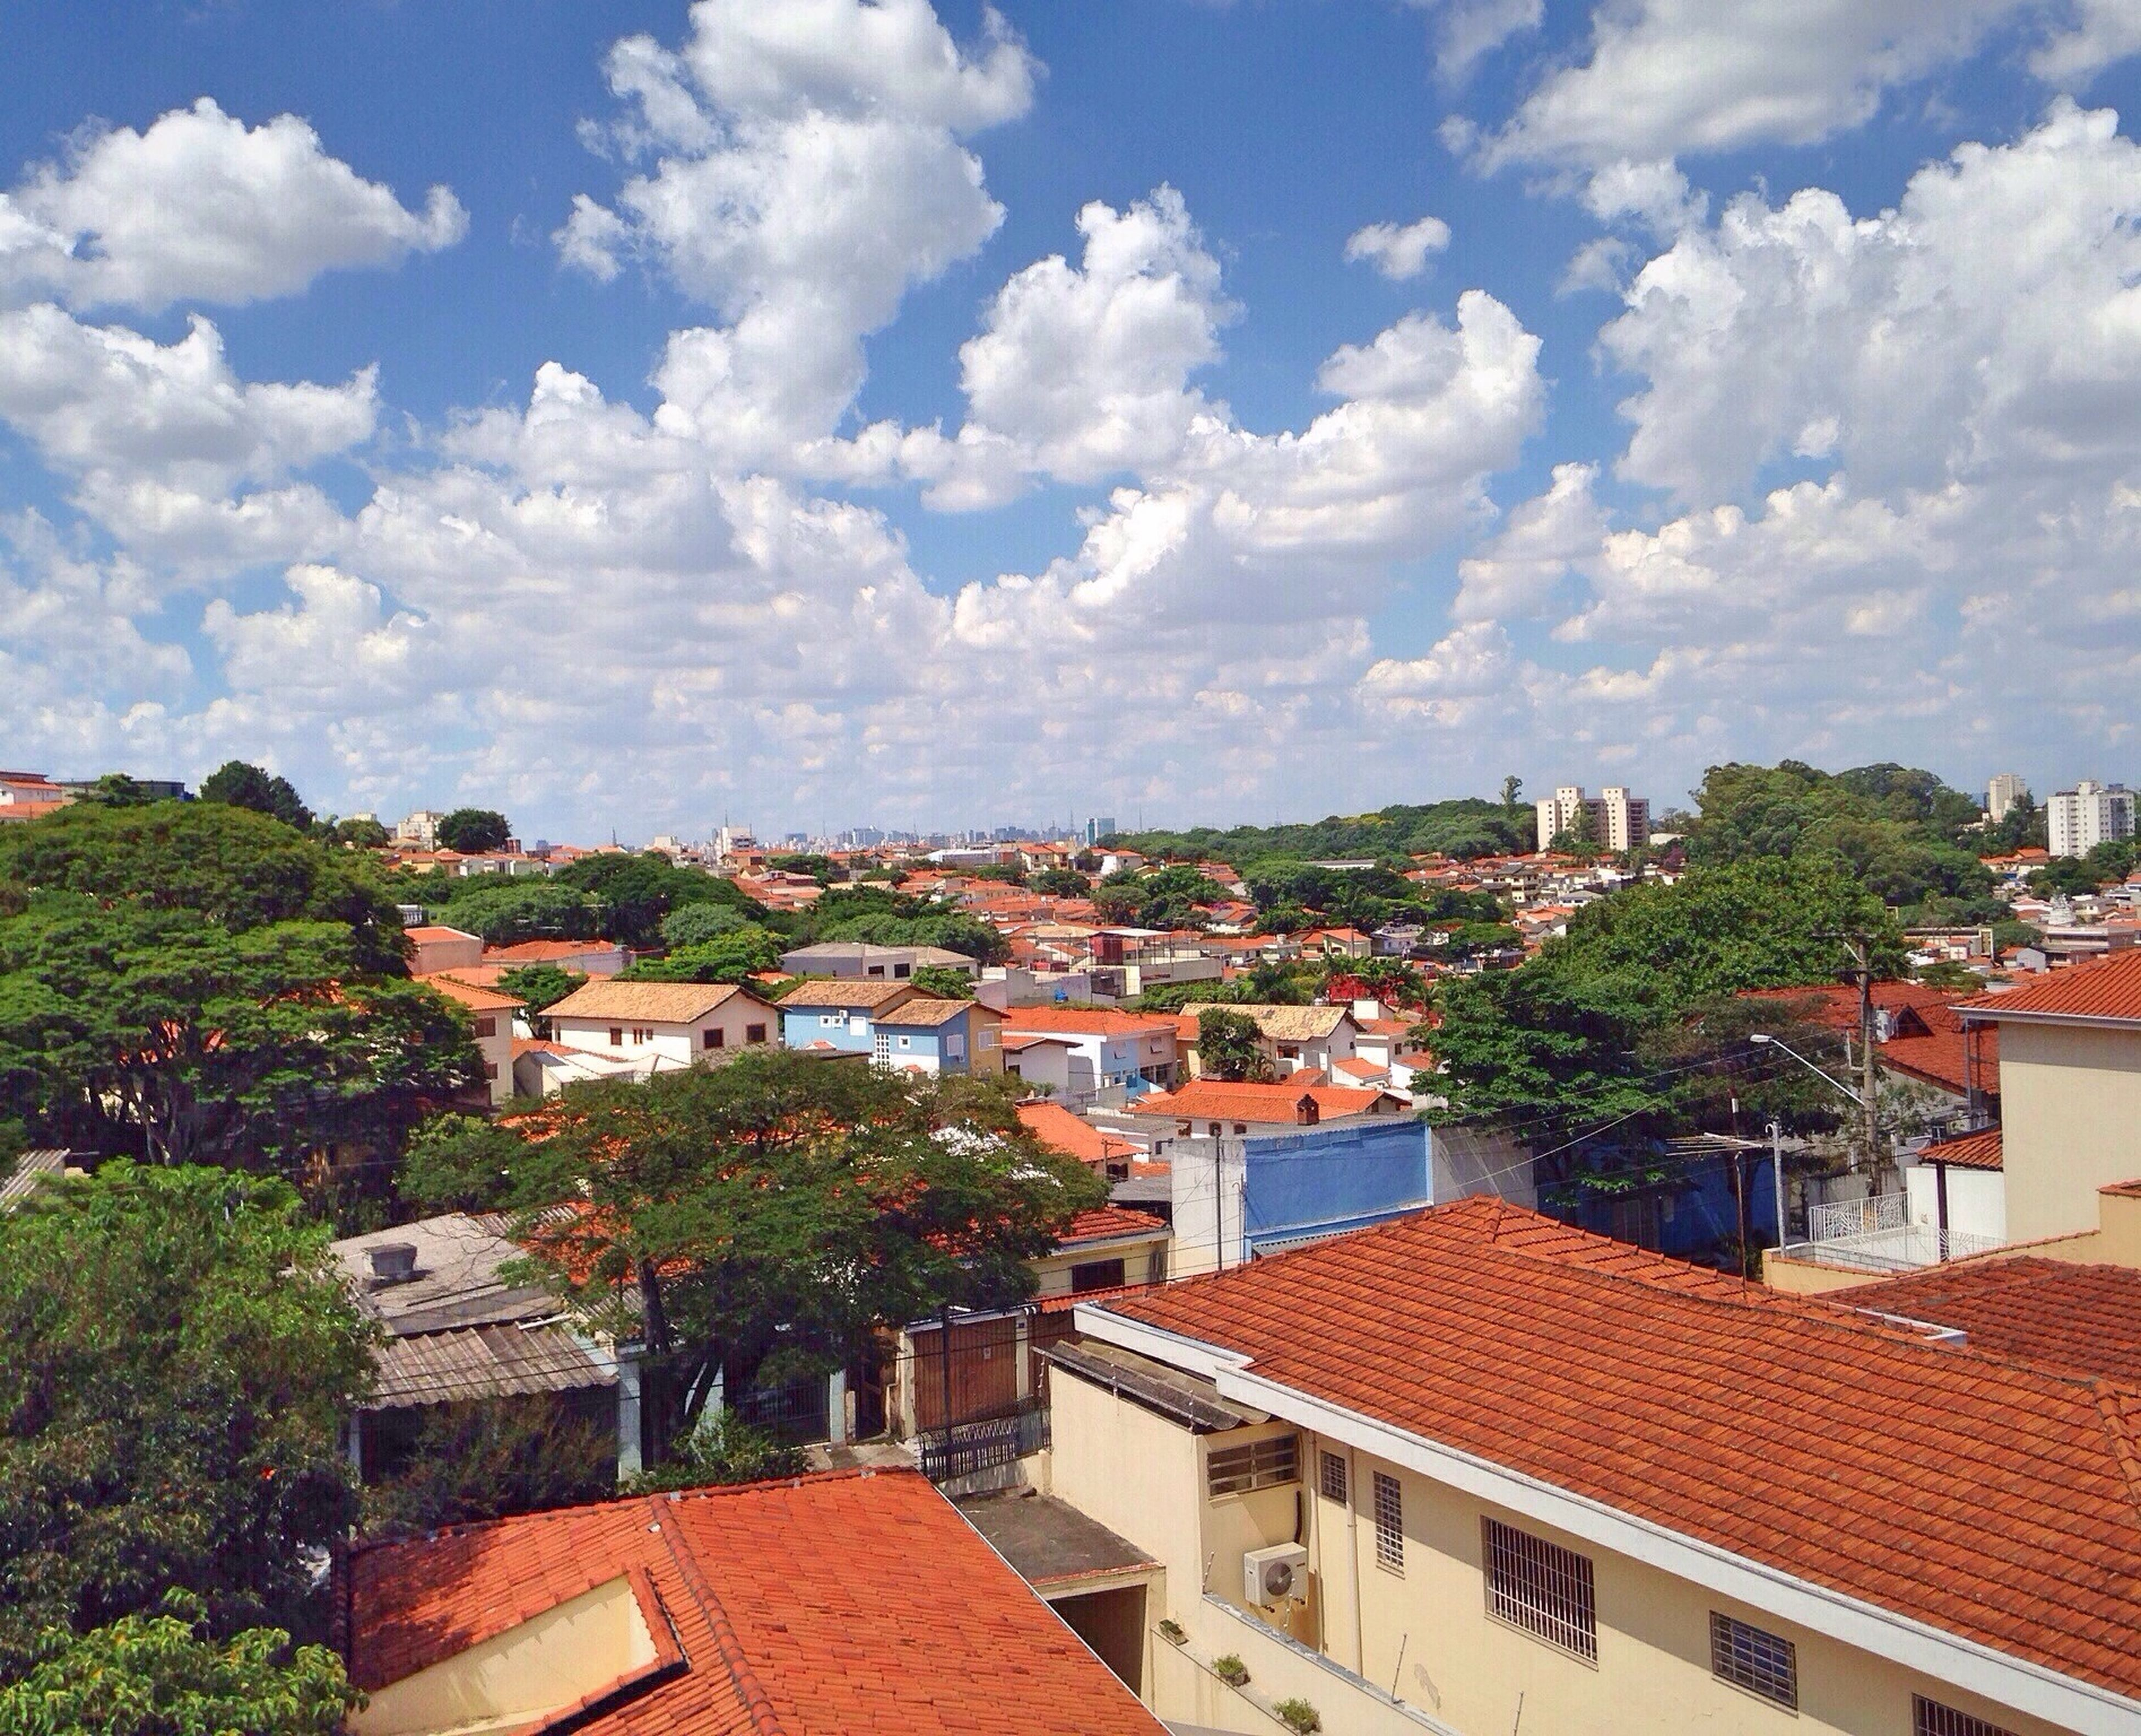 building exterior, architecture, built structure, sky, house, tree, residential structure, residential building, residential district, roof, city, cloud - sky, high angle view, town, crowded, townscape, cityscape, cloud, cloudy, day